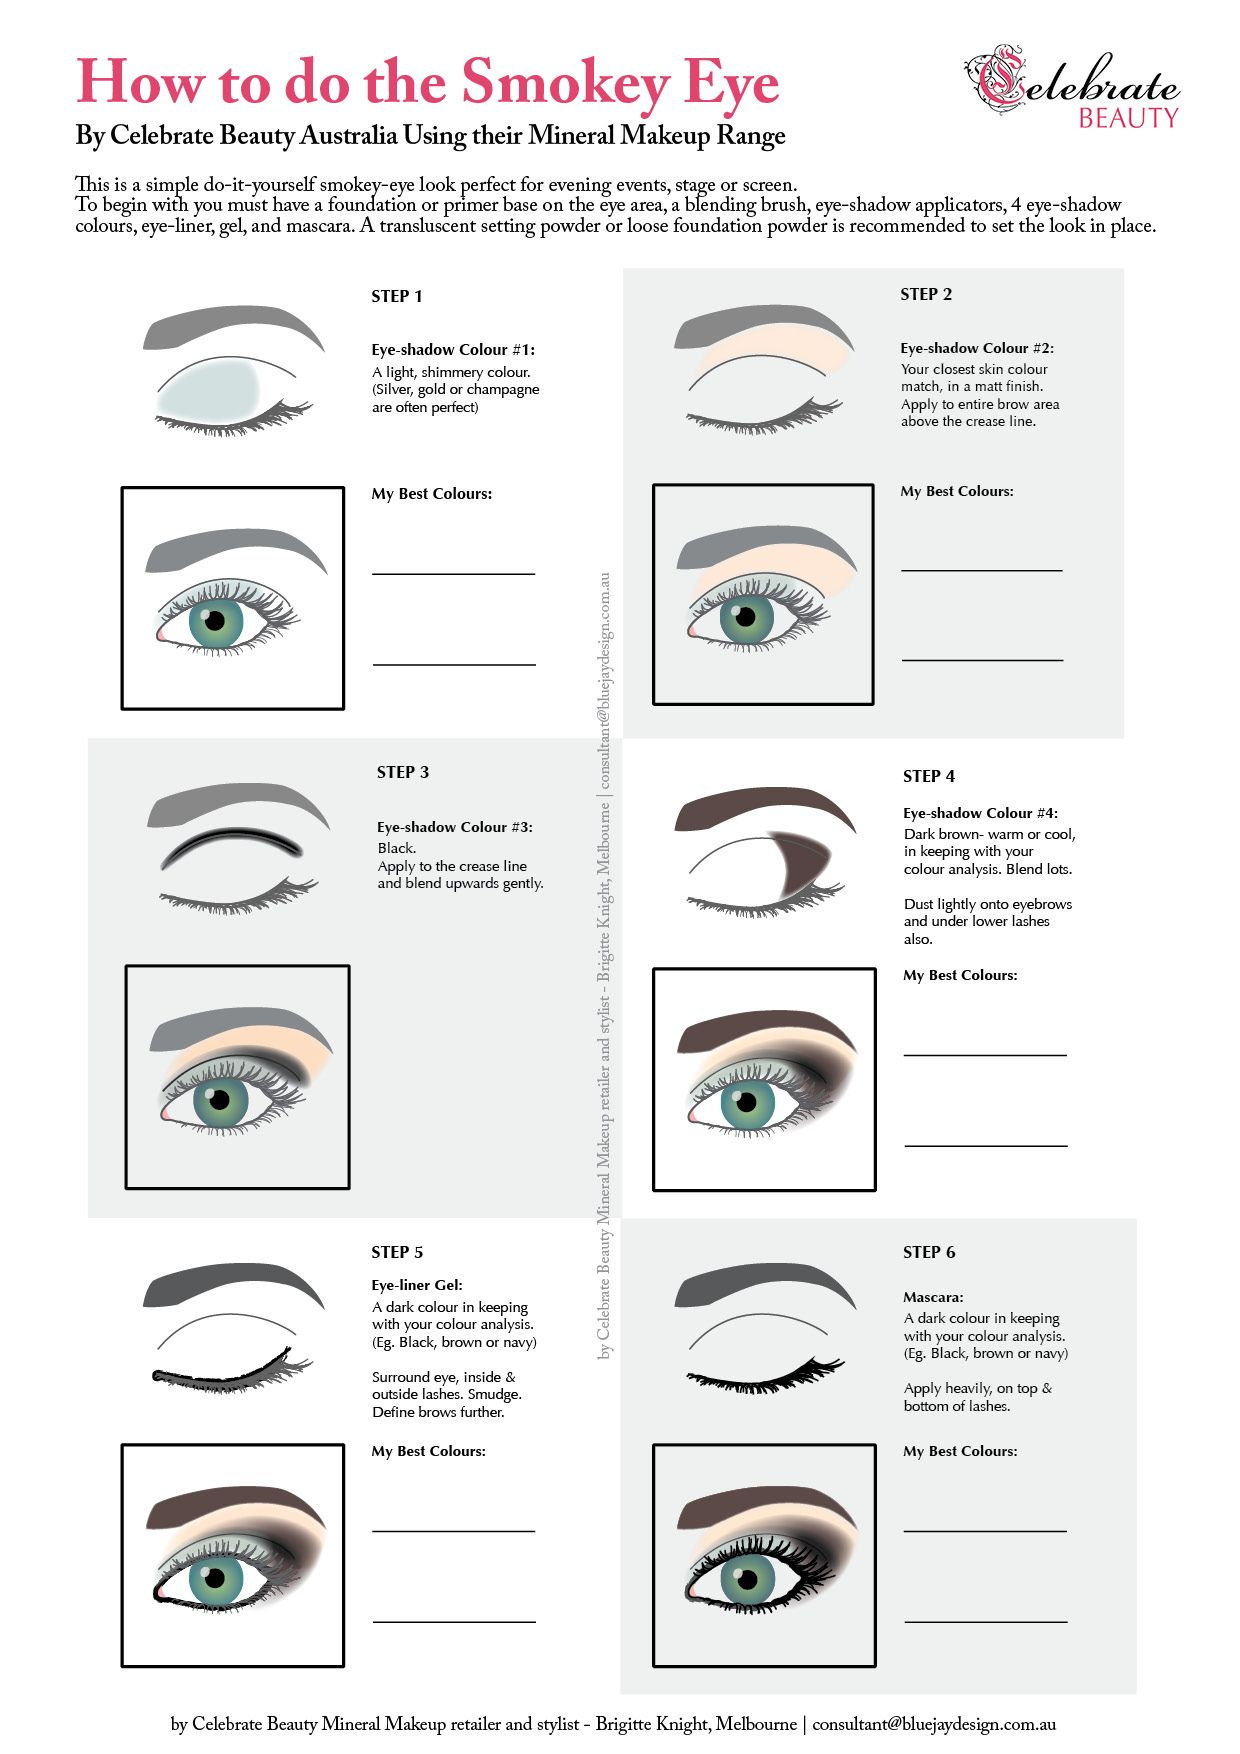 How to do the smokey eye diagram for makeup application visit my how to do the smokey eye diagram for makeup application visit my board for the upcoming course in melbourne smokeyeye makeuptutorial makeupdemo ccuart Gallery